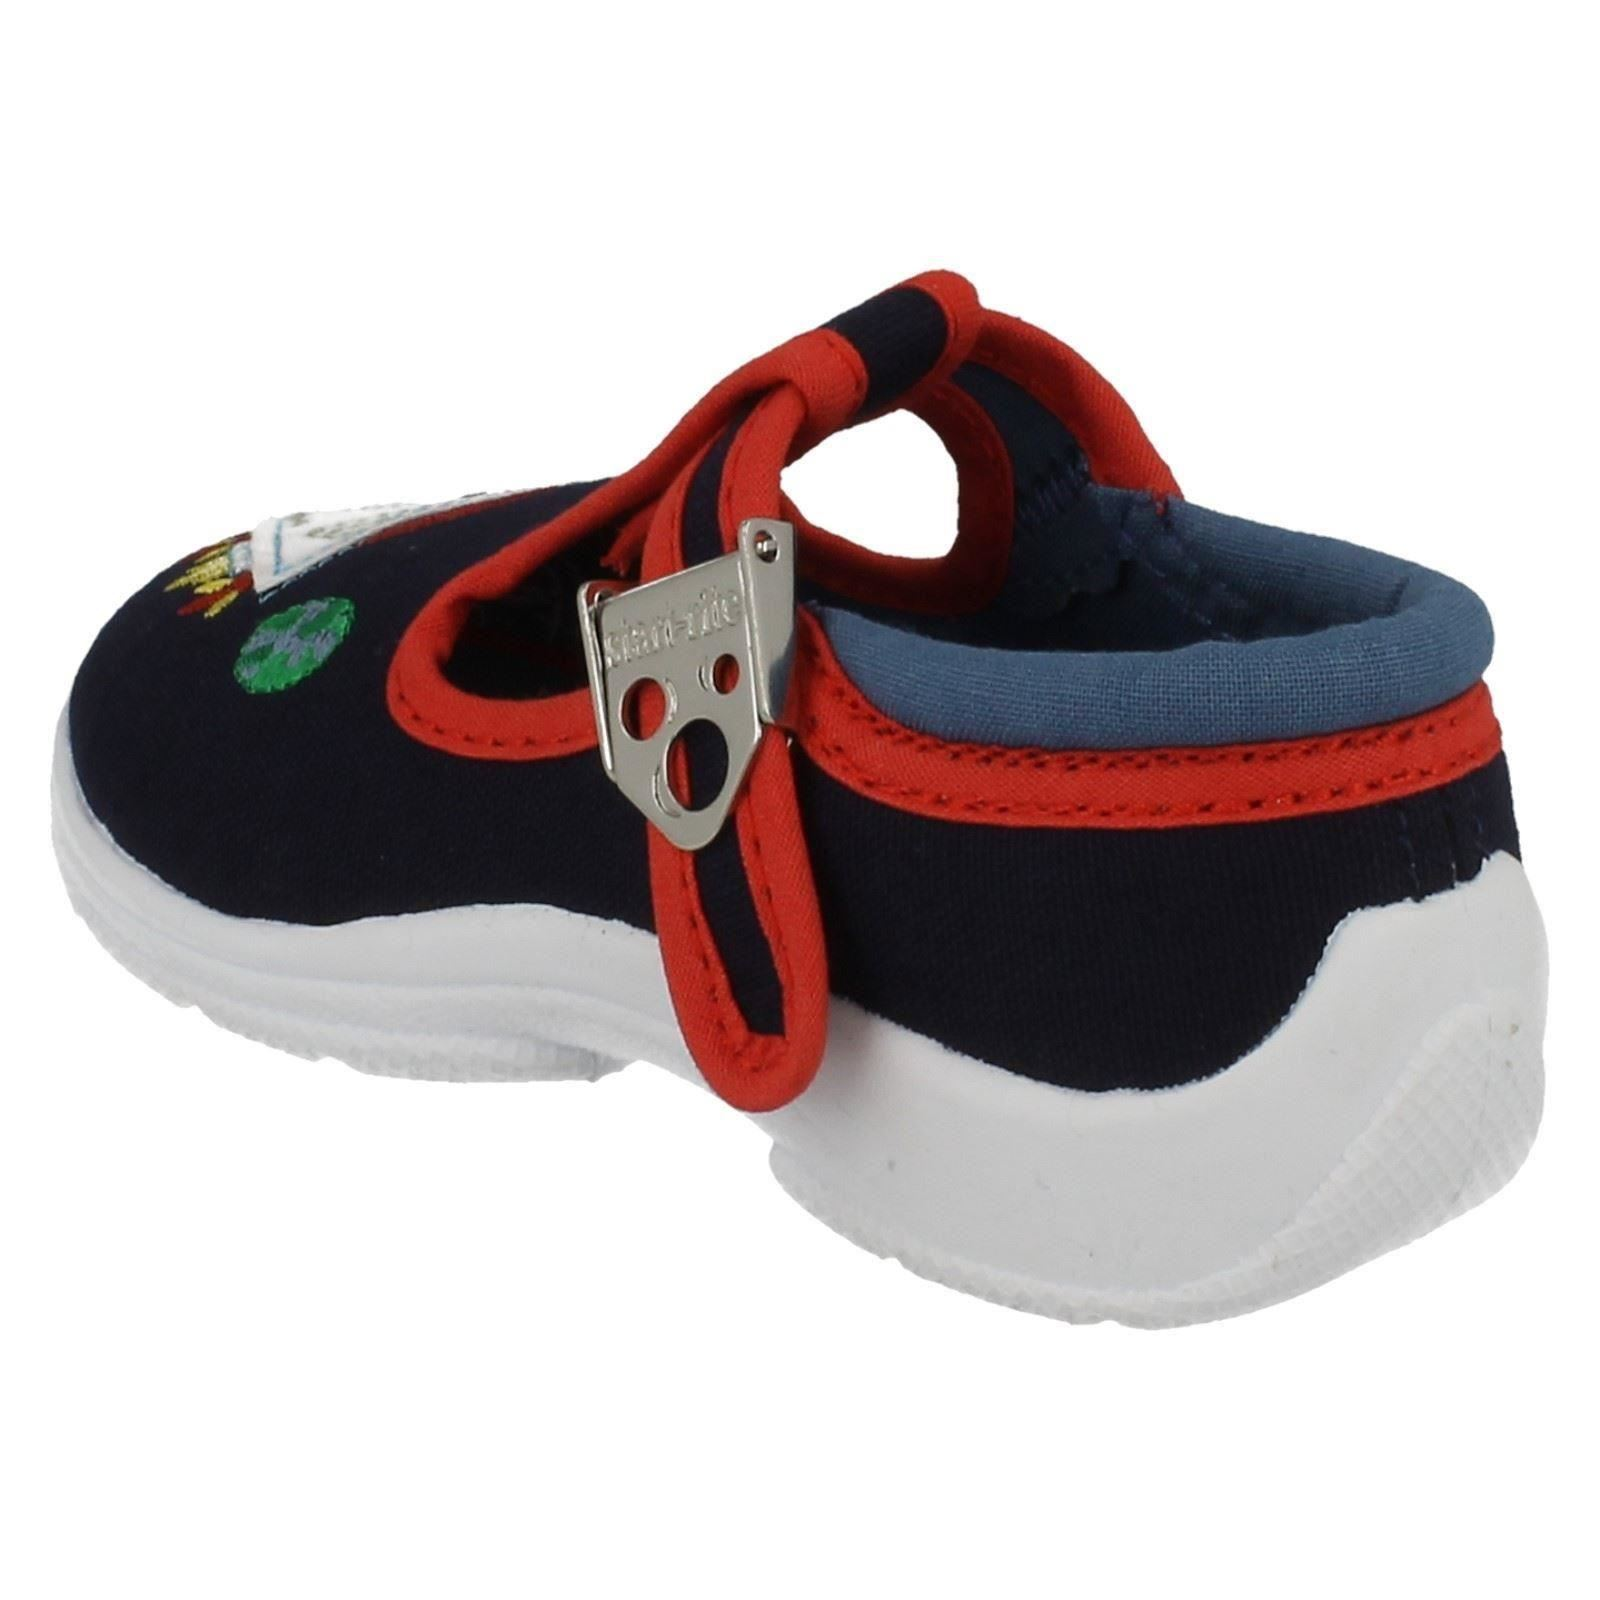 boys startrite canvas shoes with clasp fastening space